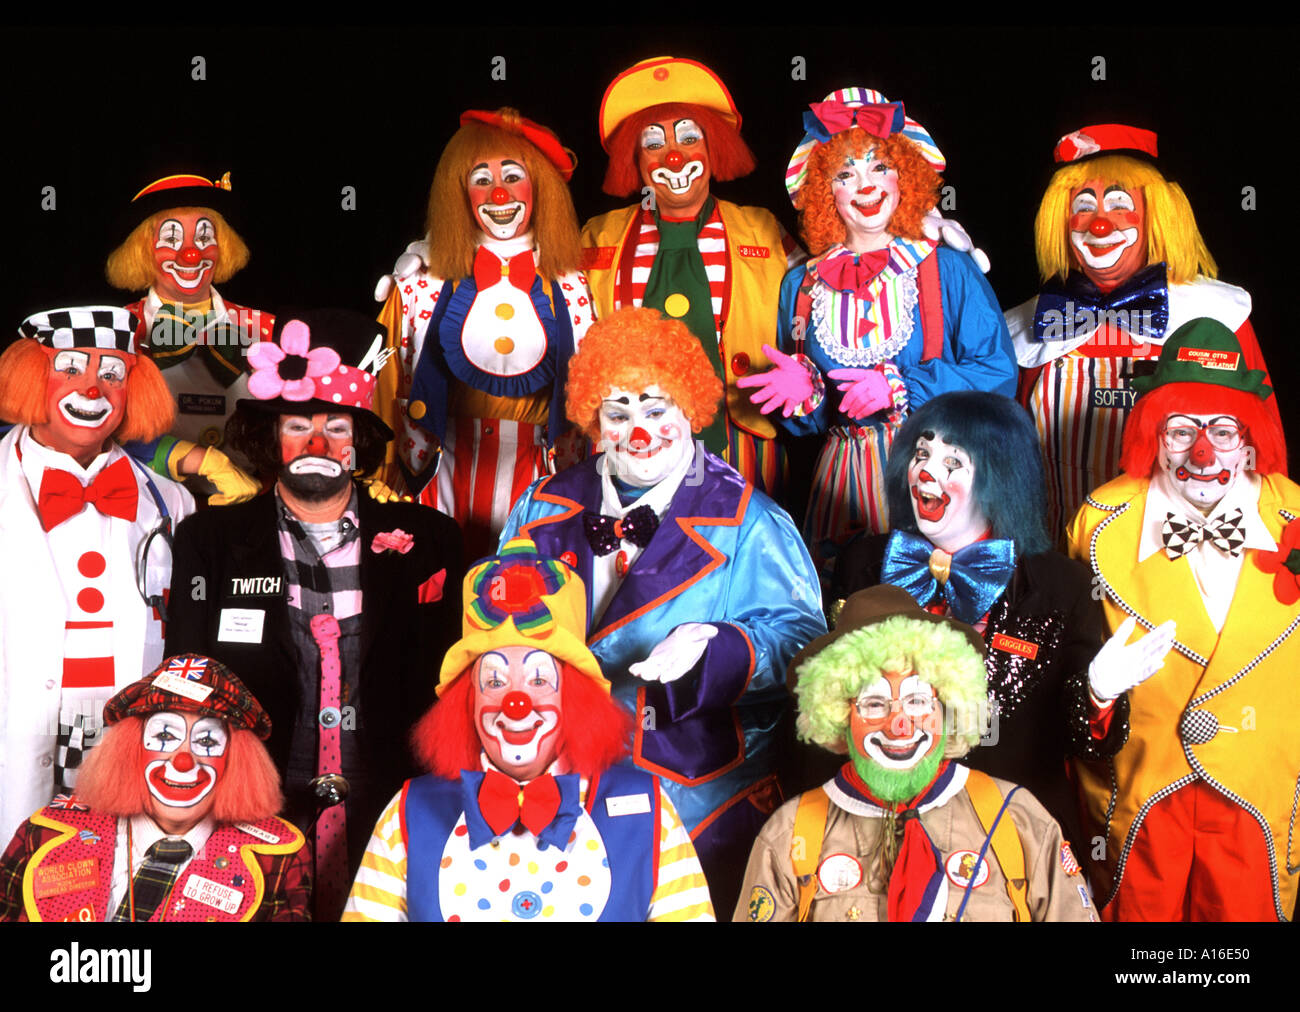 Image result for images of clowns